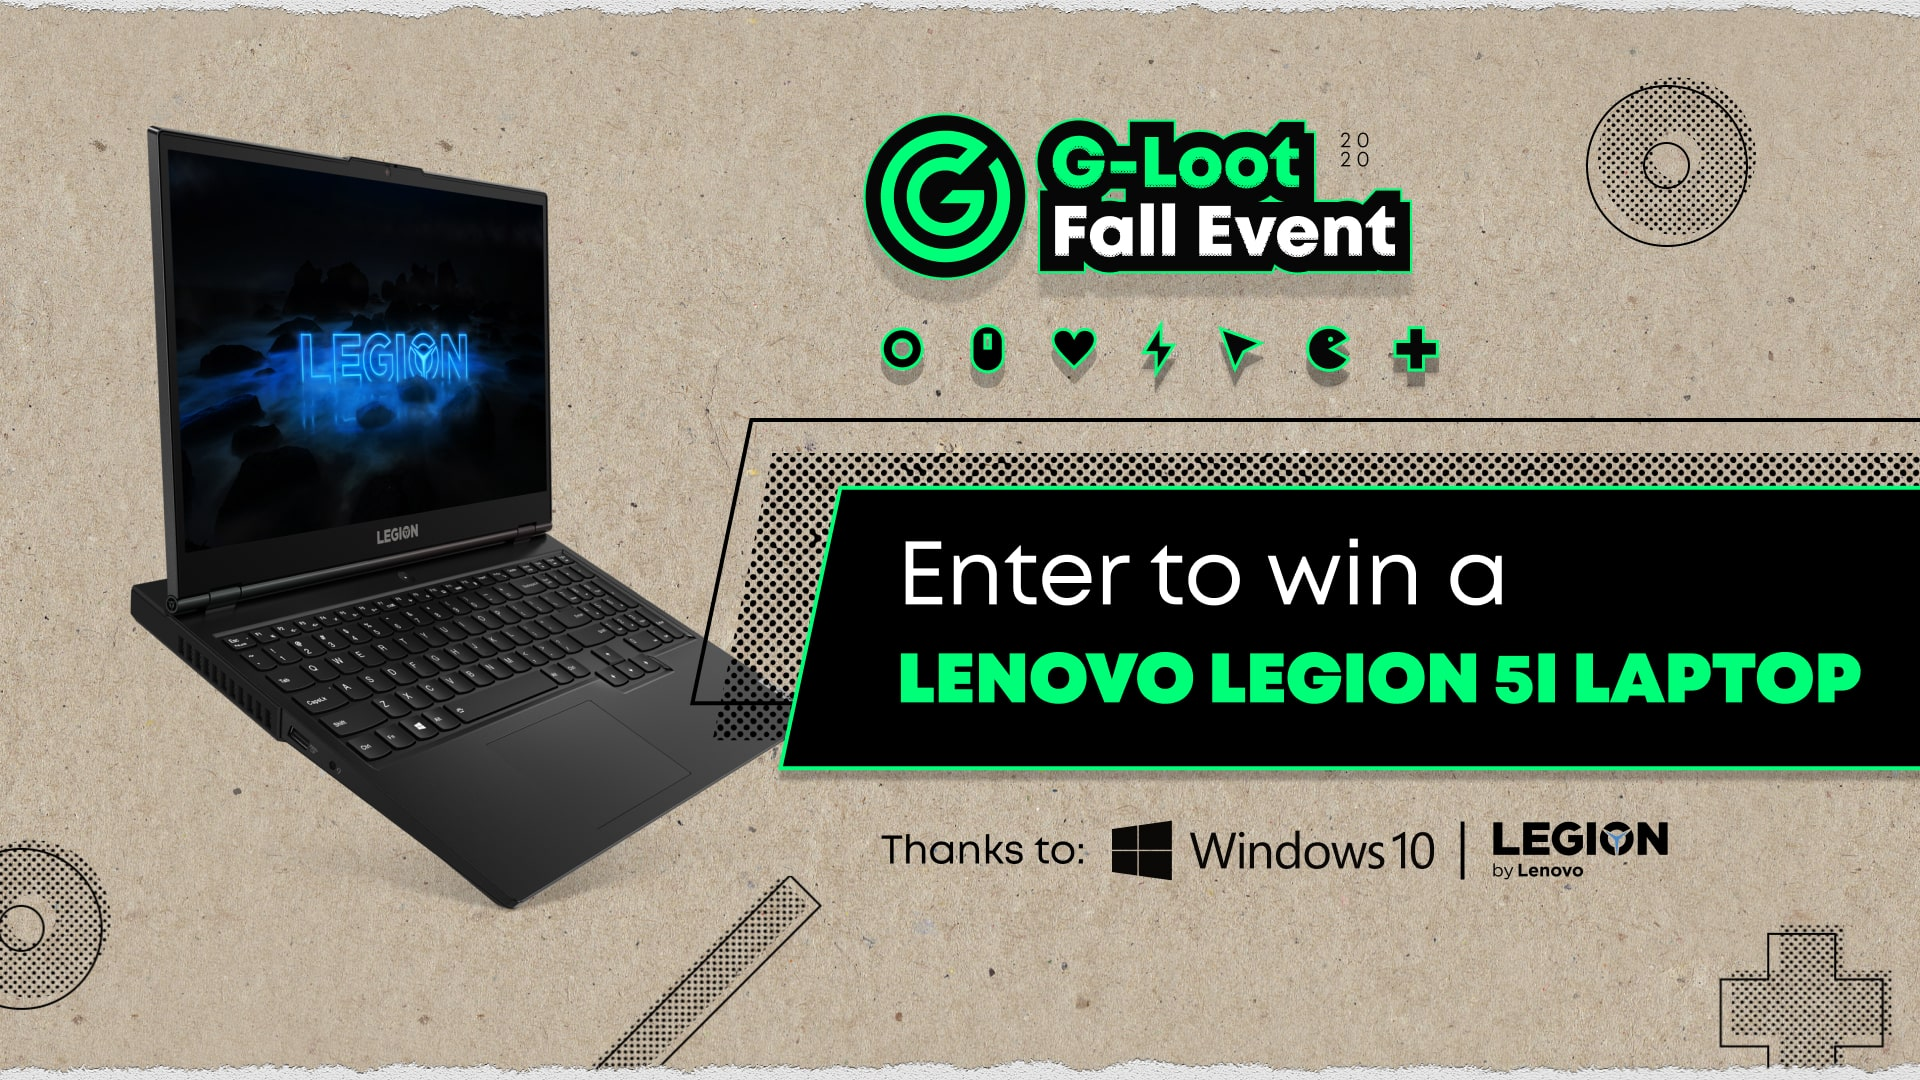 online contests, sweepstakes and giveaways - Enter to win a Legion 5i Laptop from Lenovo, Microsoft and G-Loot